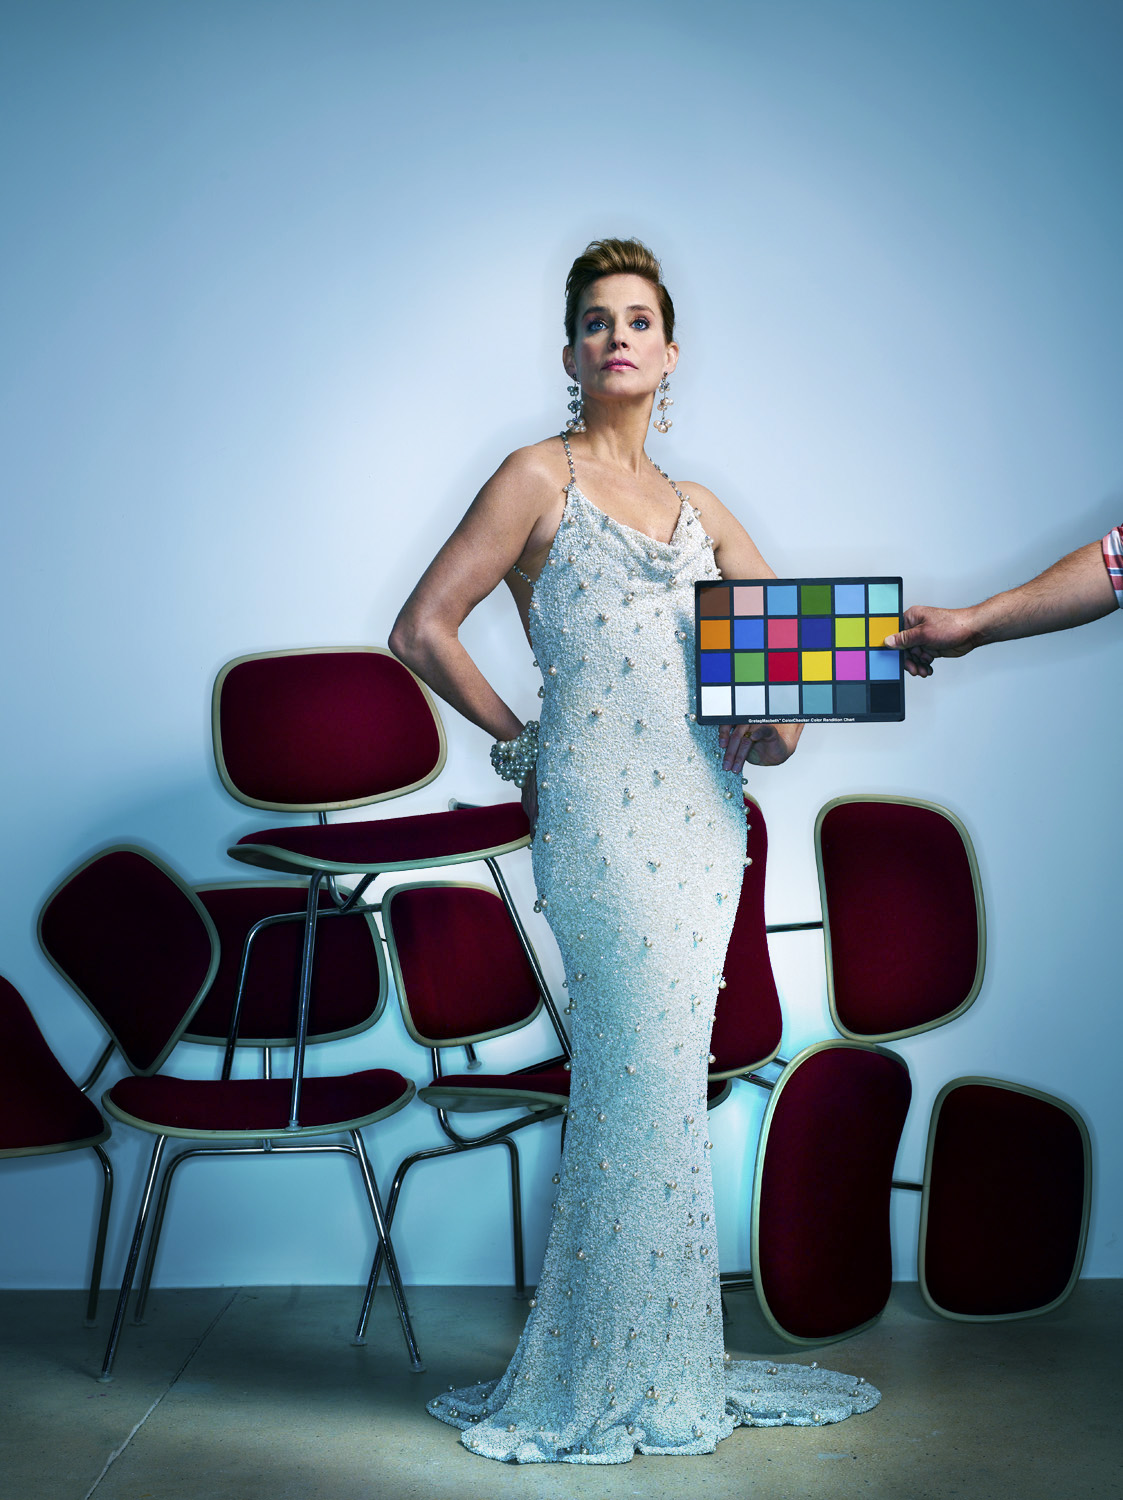 Catherine Mary Stewart nudes (73 photos), Tits, Bikini, Twitter, butt 2017